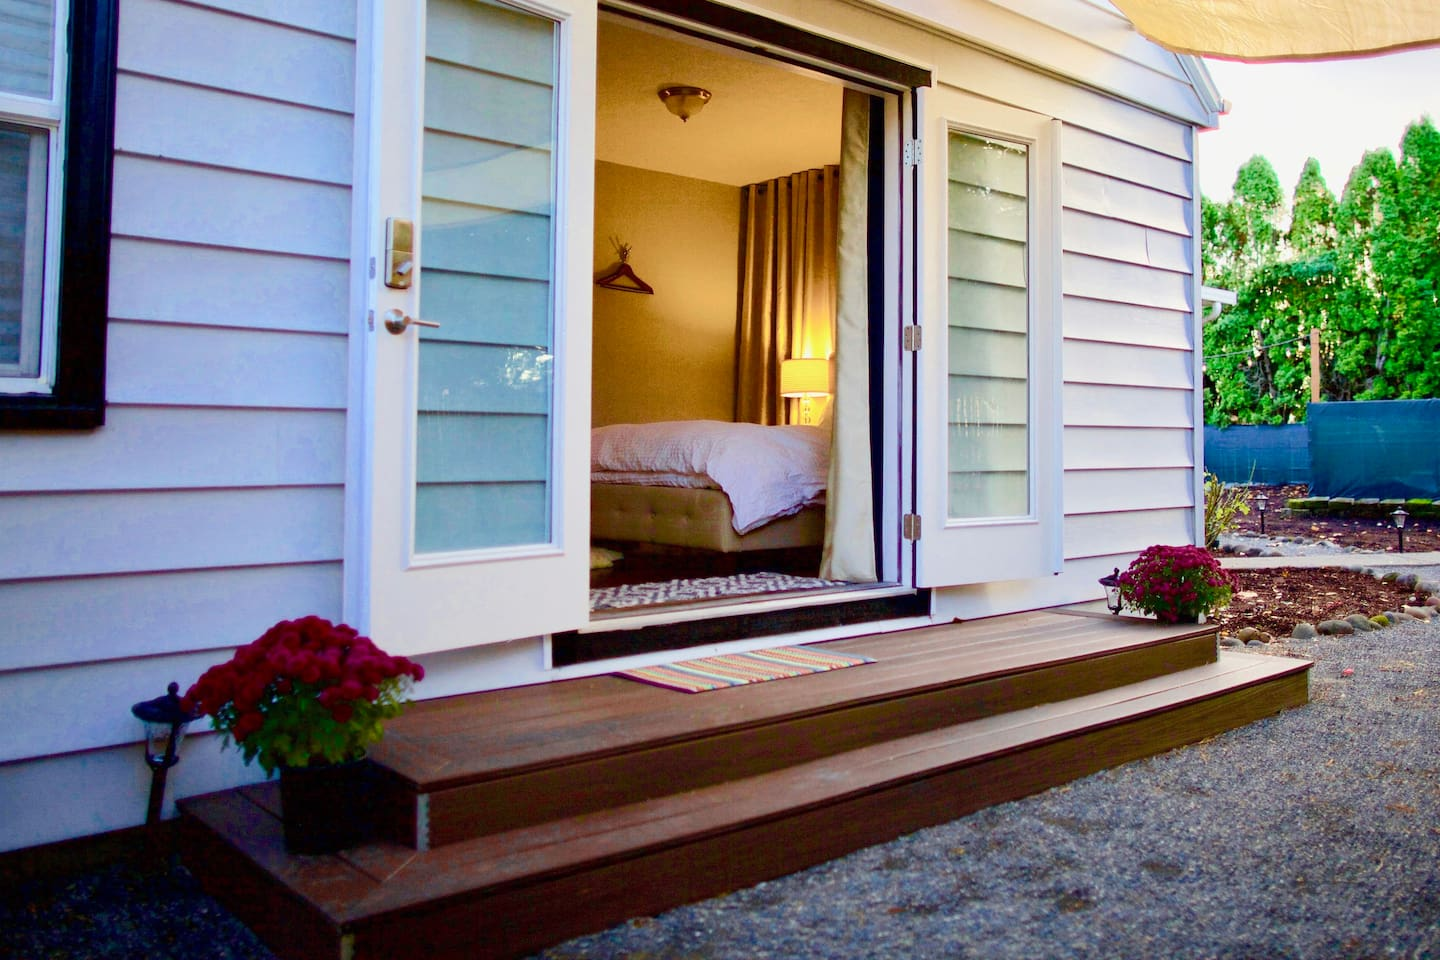 French doors at the entrance to the studio suite.